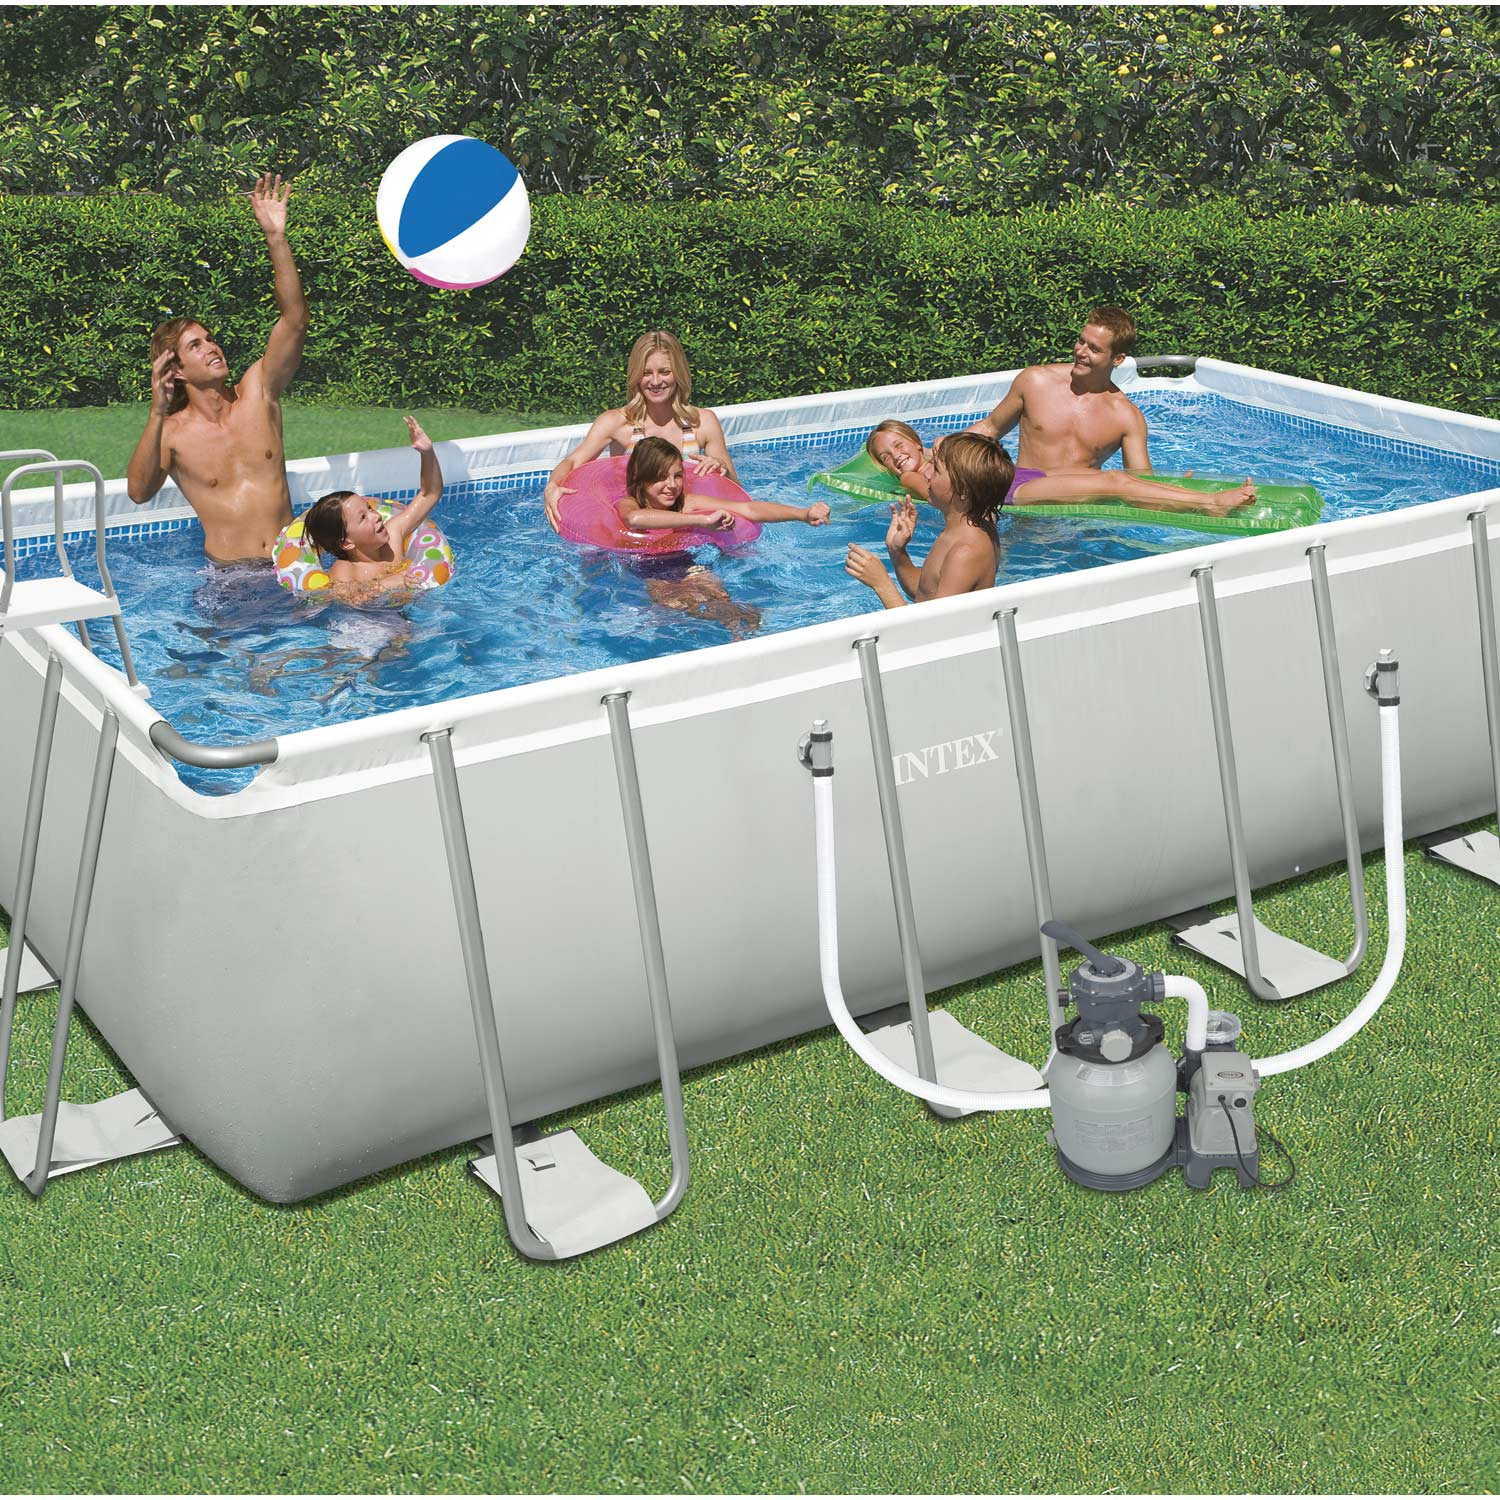 Piscine hors sol autoportante tubulaire ultra silver intex for Sevylor piscine hors sol